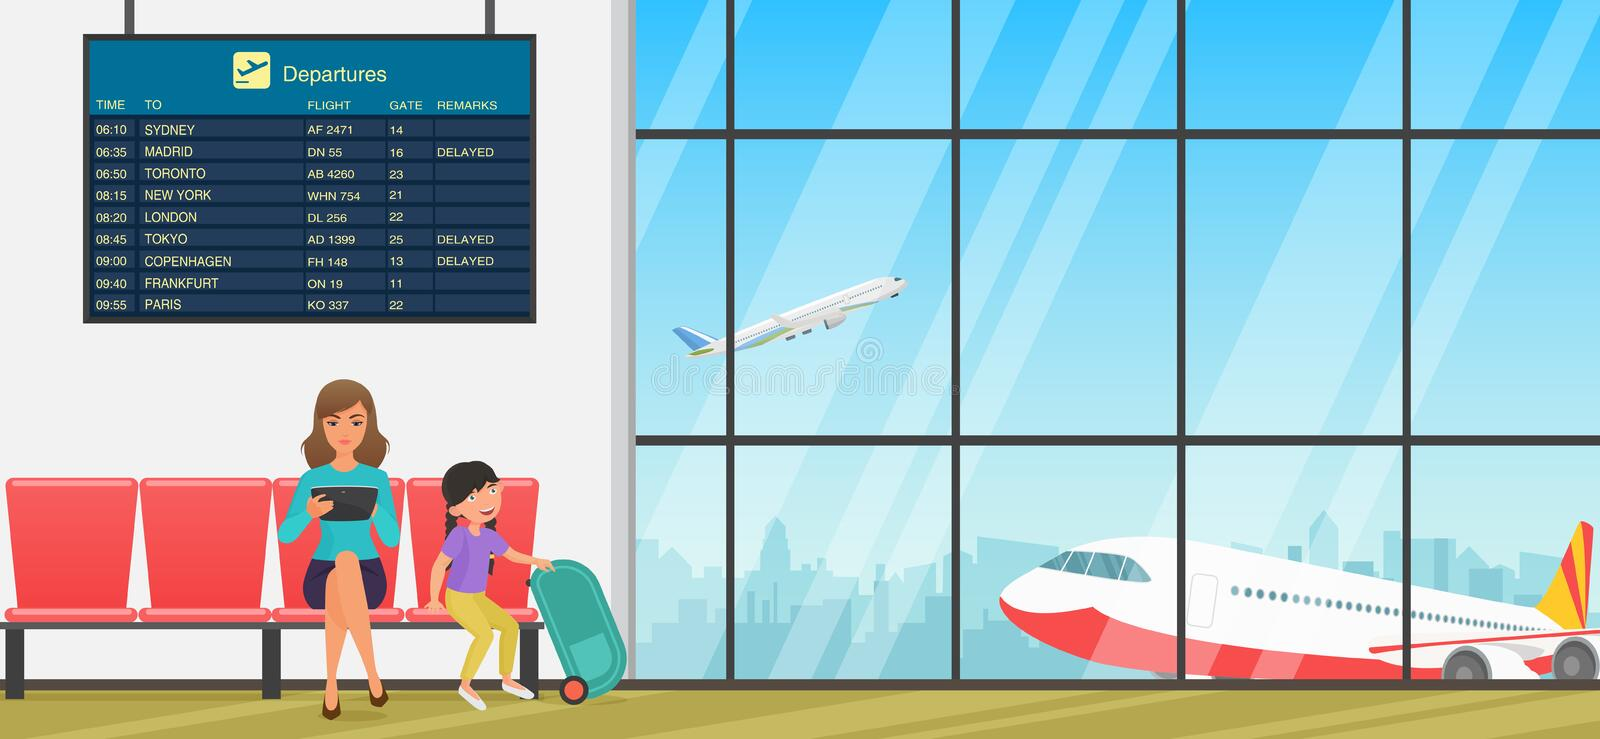 Airport waiting room or departure lounge with chairs, information panels and people. Terminal hall with airplanes view. Airport waiting room or departure lounge royalty free illustration